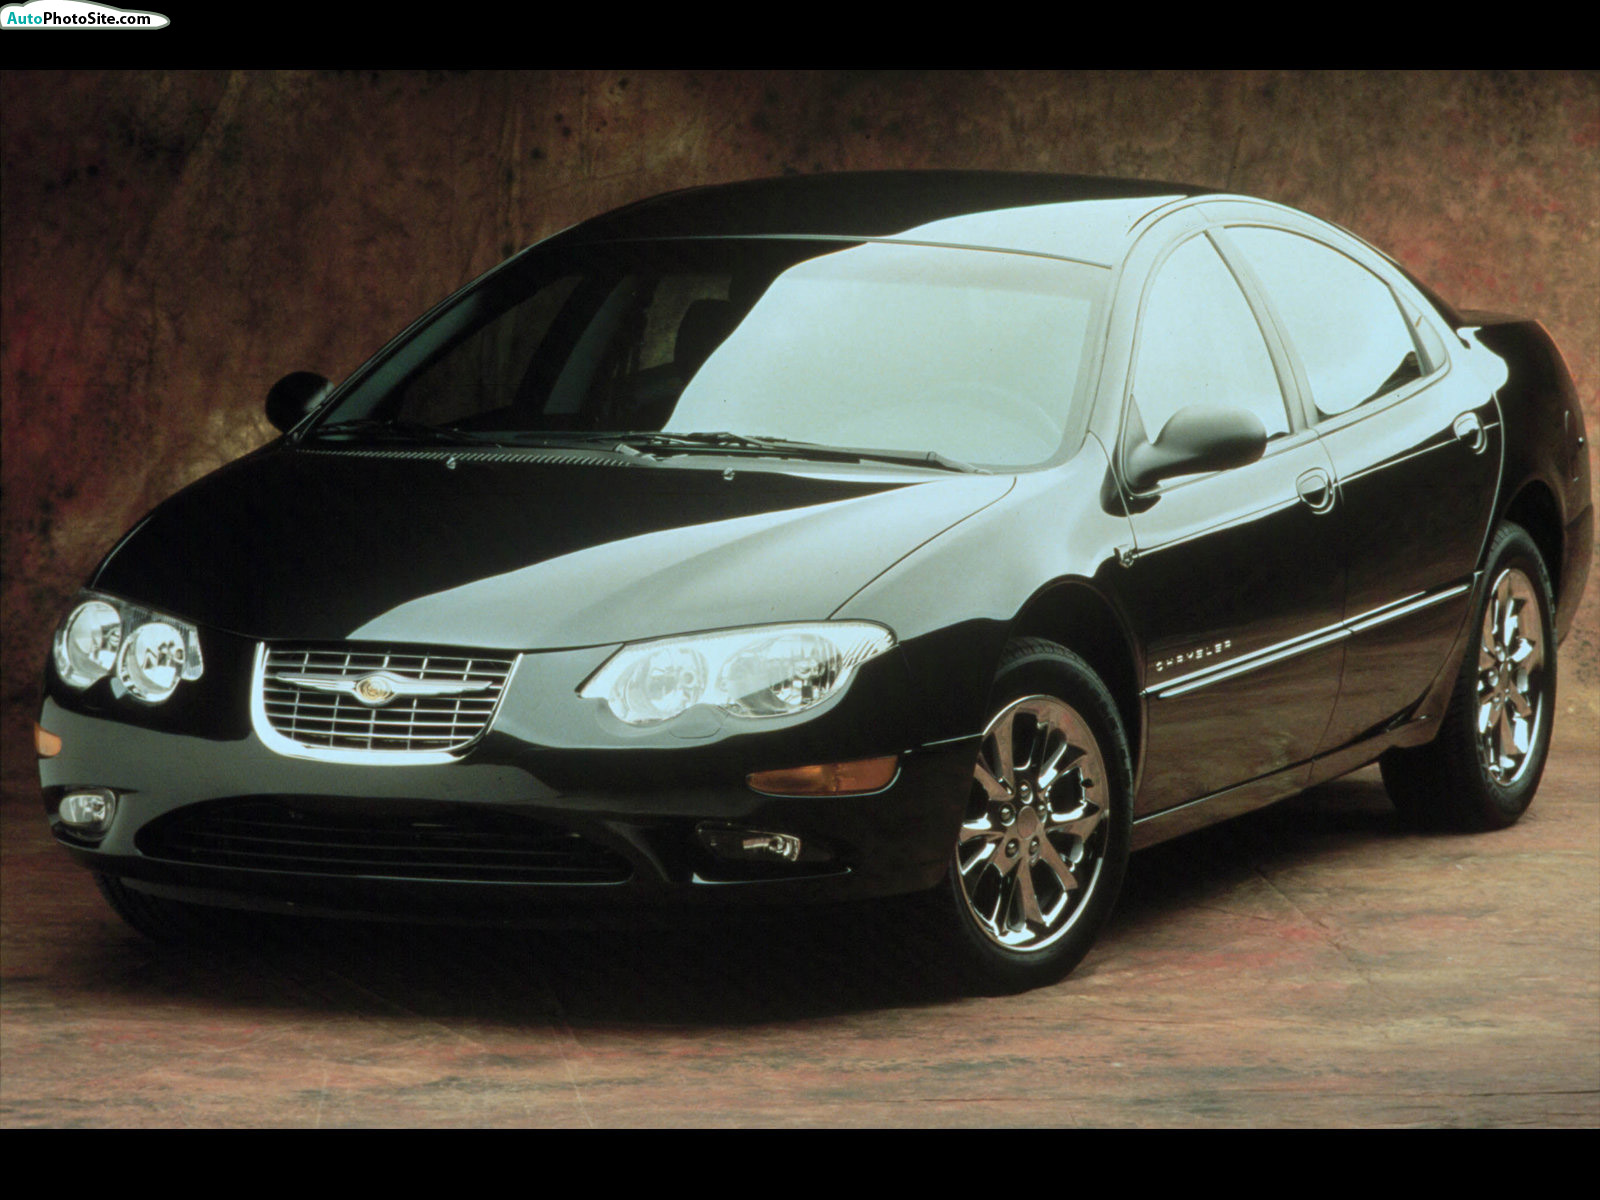 1999 Chrysler 300M Gold